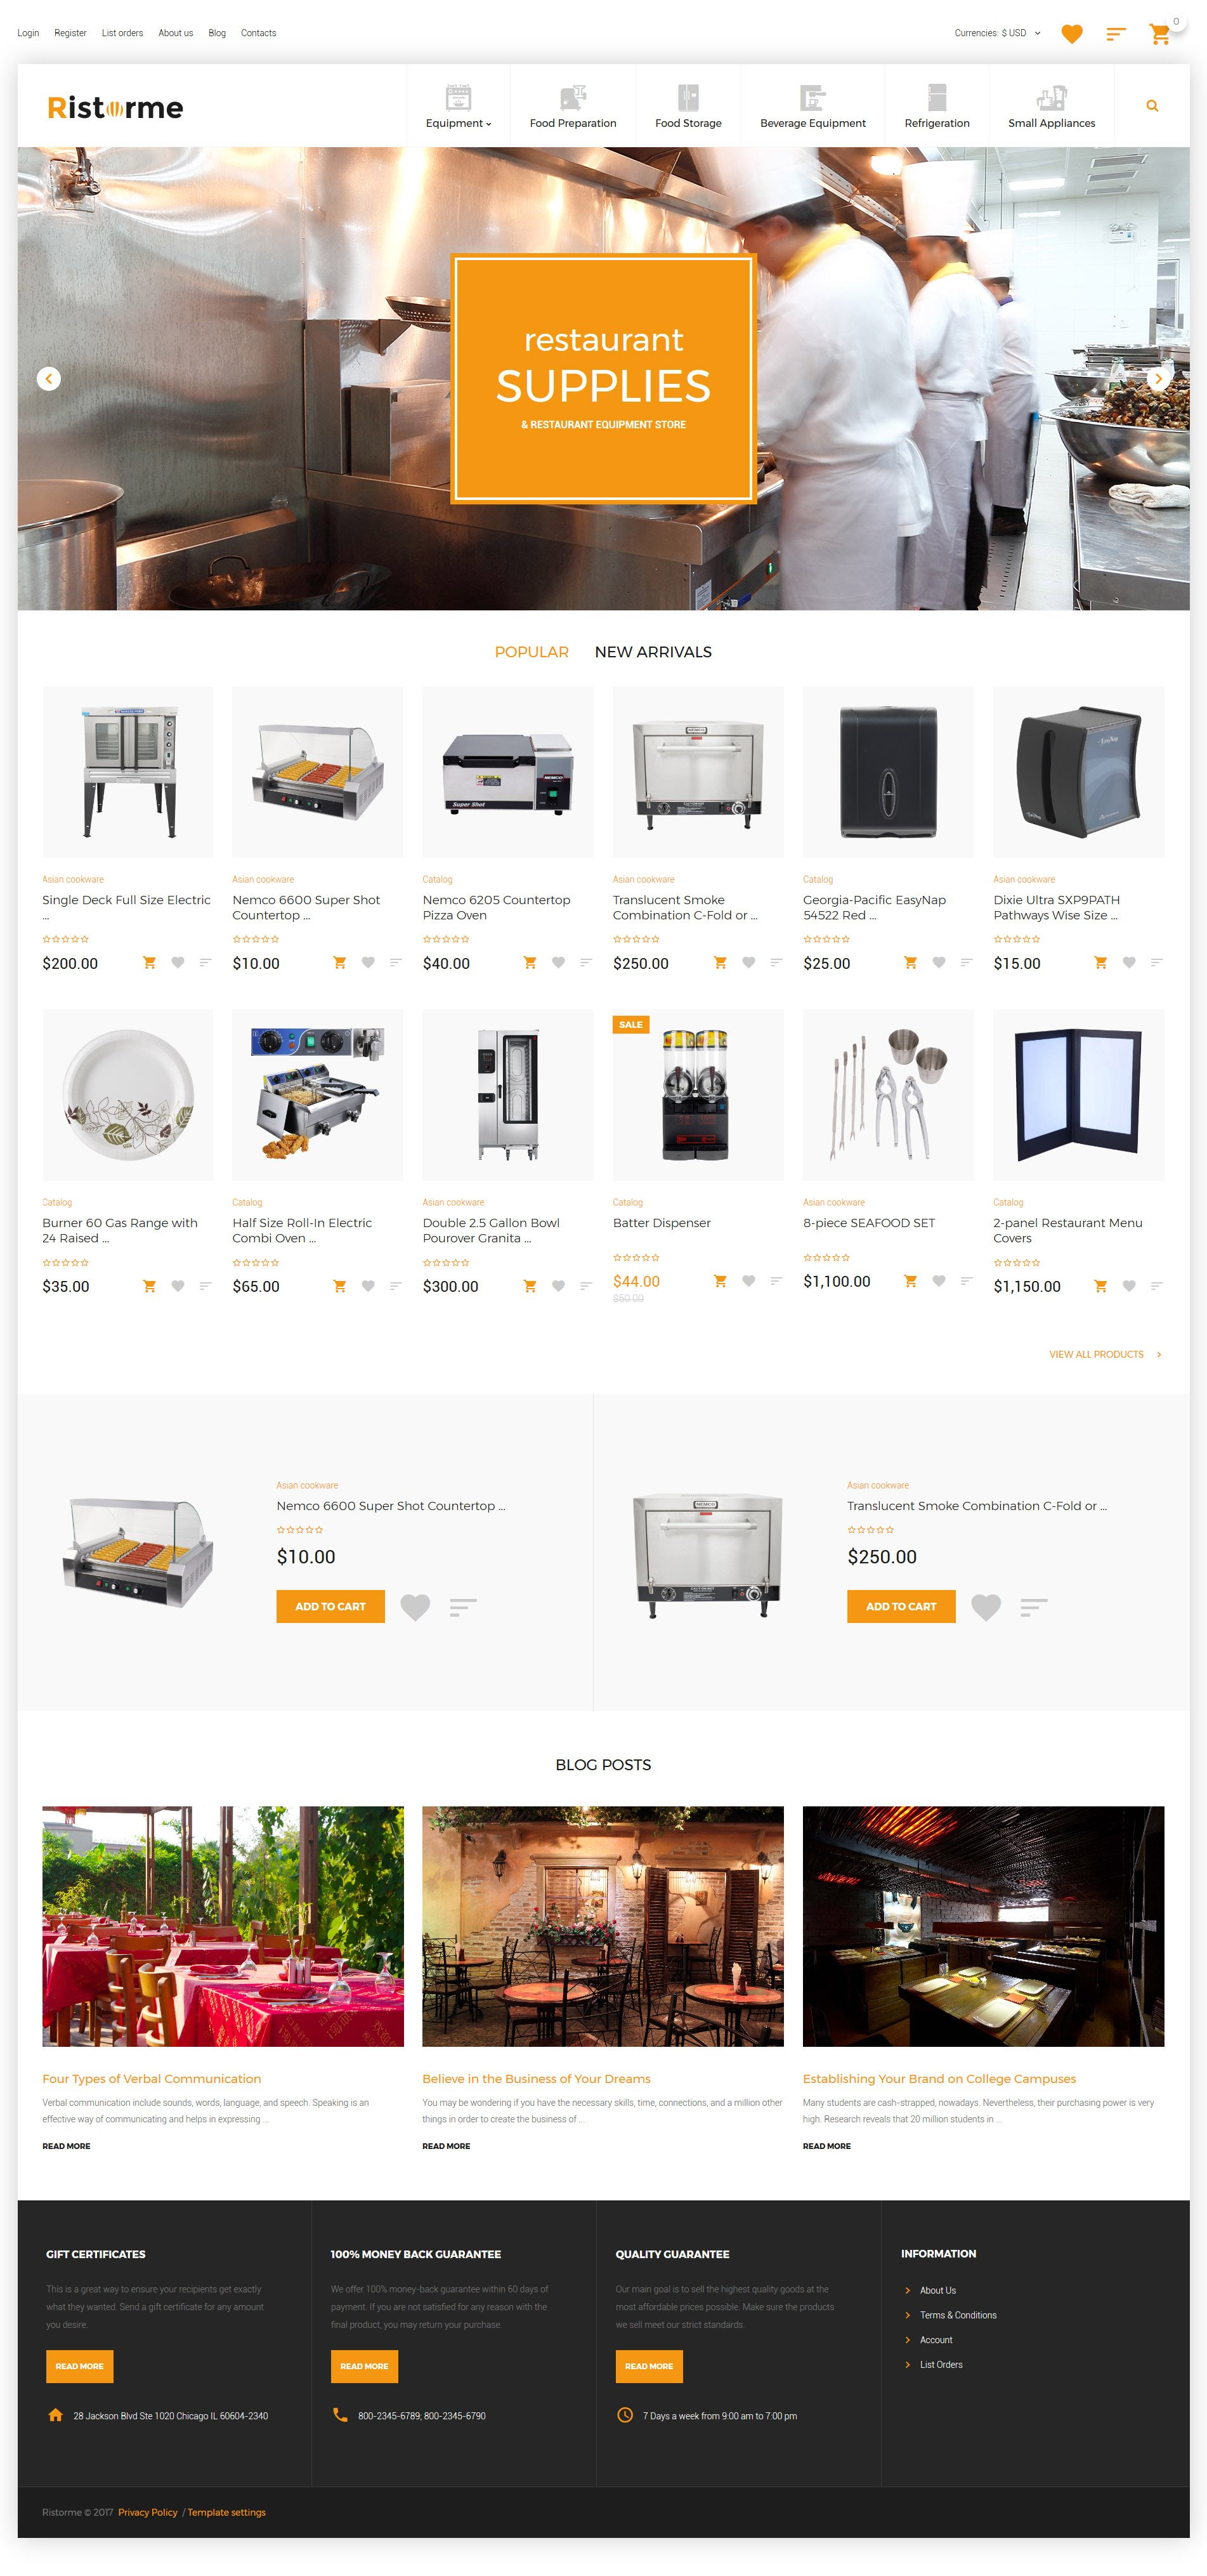 Restaurant Supplies VirtueMart Template - screenshot